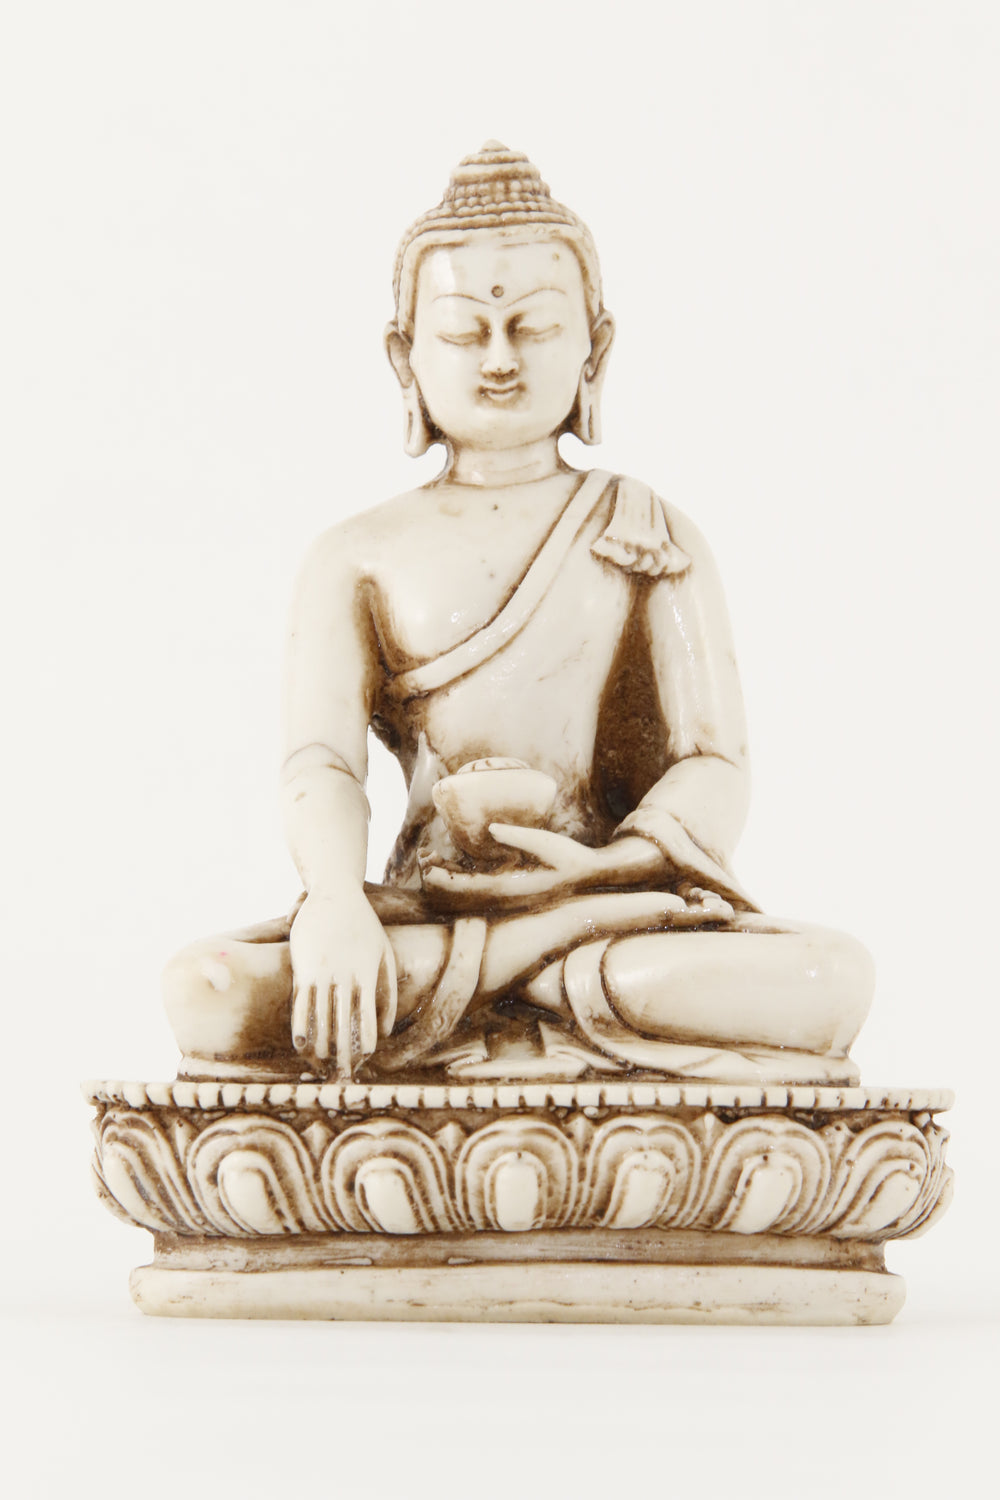 EARTH TOUCHING BUDDHA STATUE OFF-WHITE MEDIUM SIZE FRONT VIEW